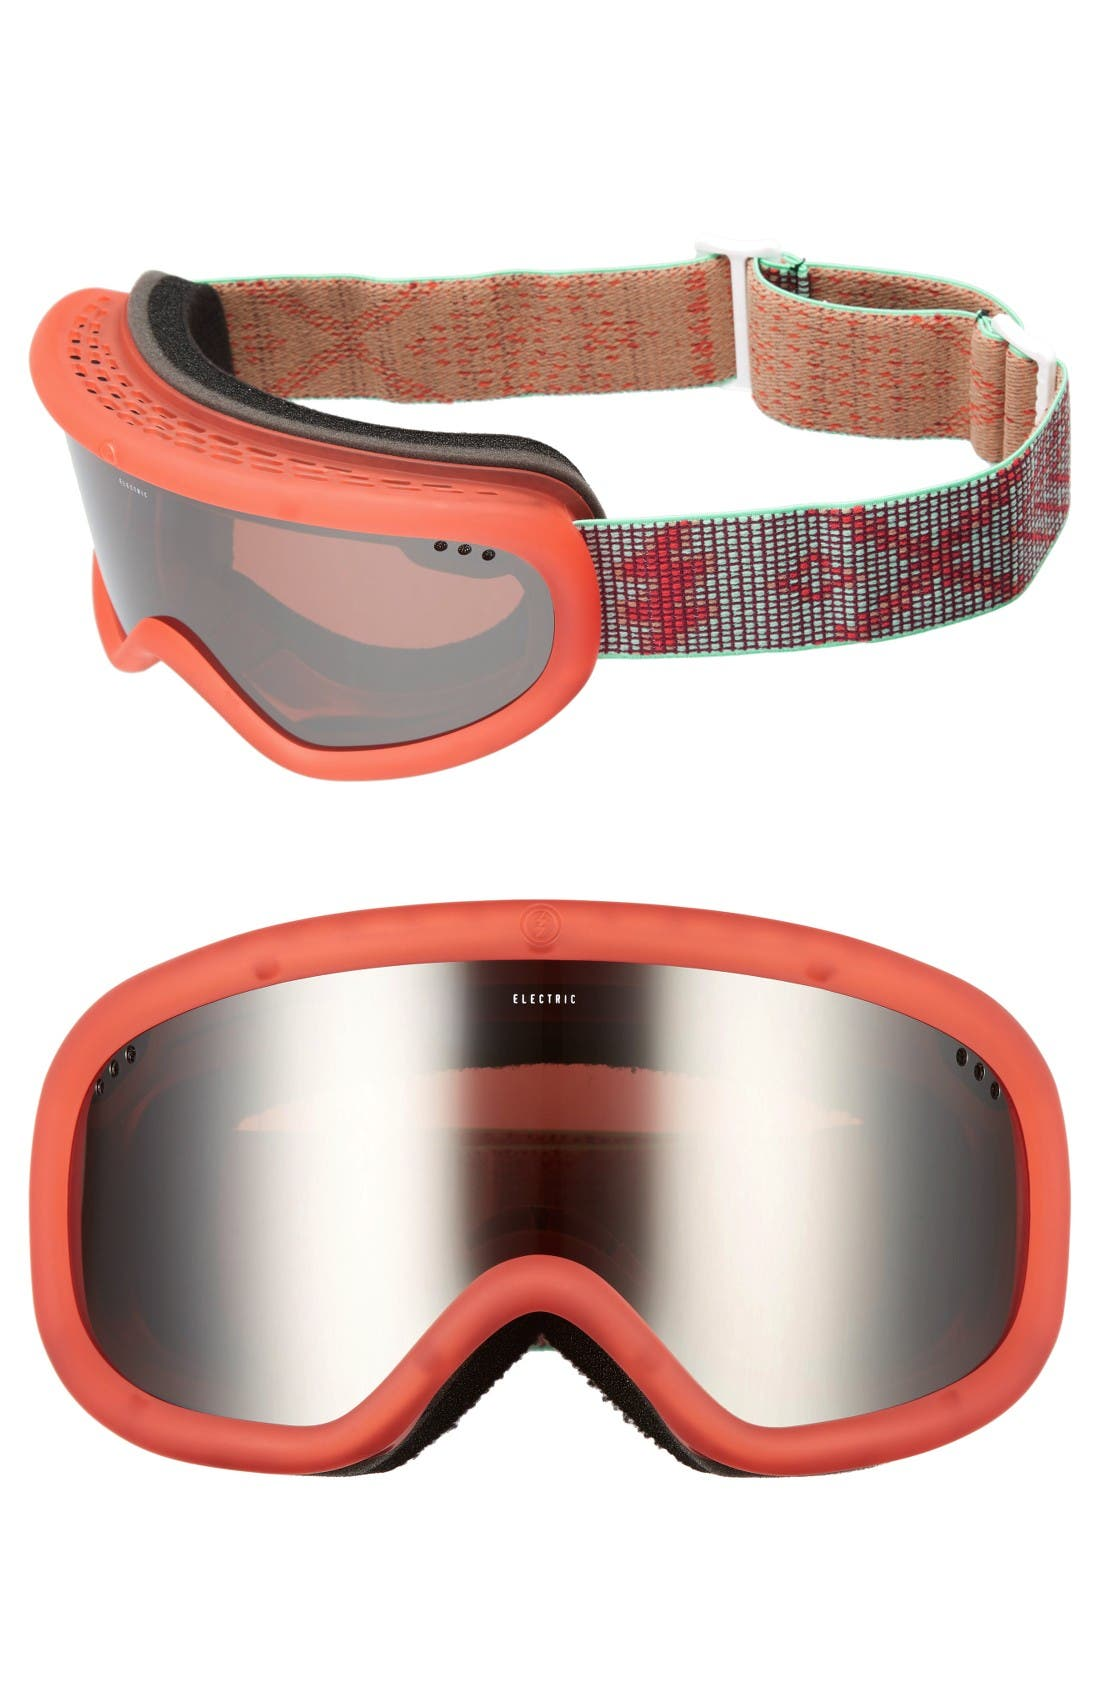 Main Image - ELECTRIC Charger 215mm Snow Goggles